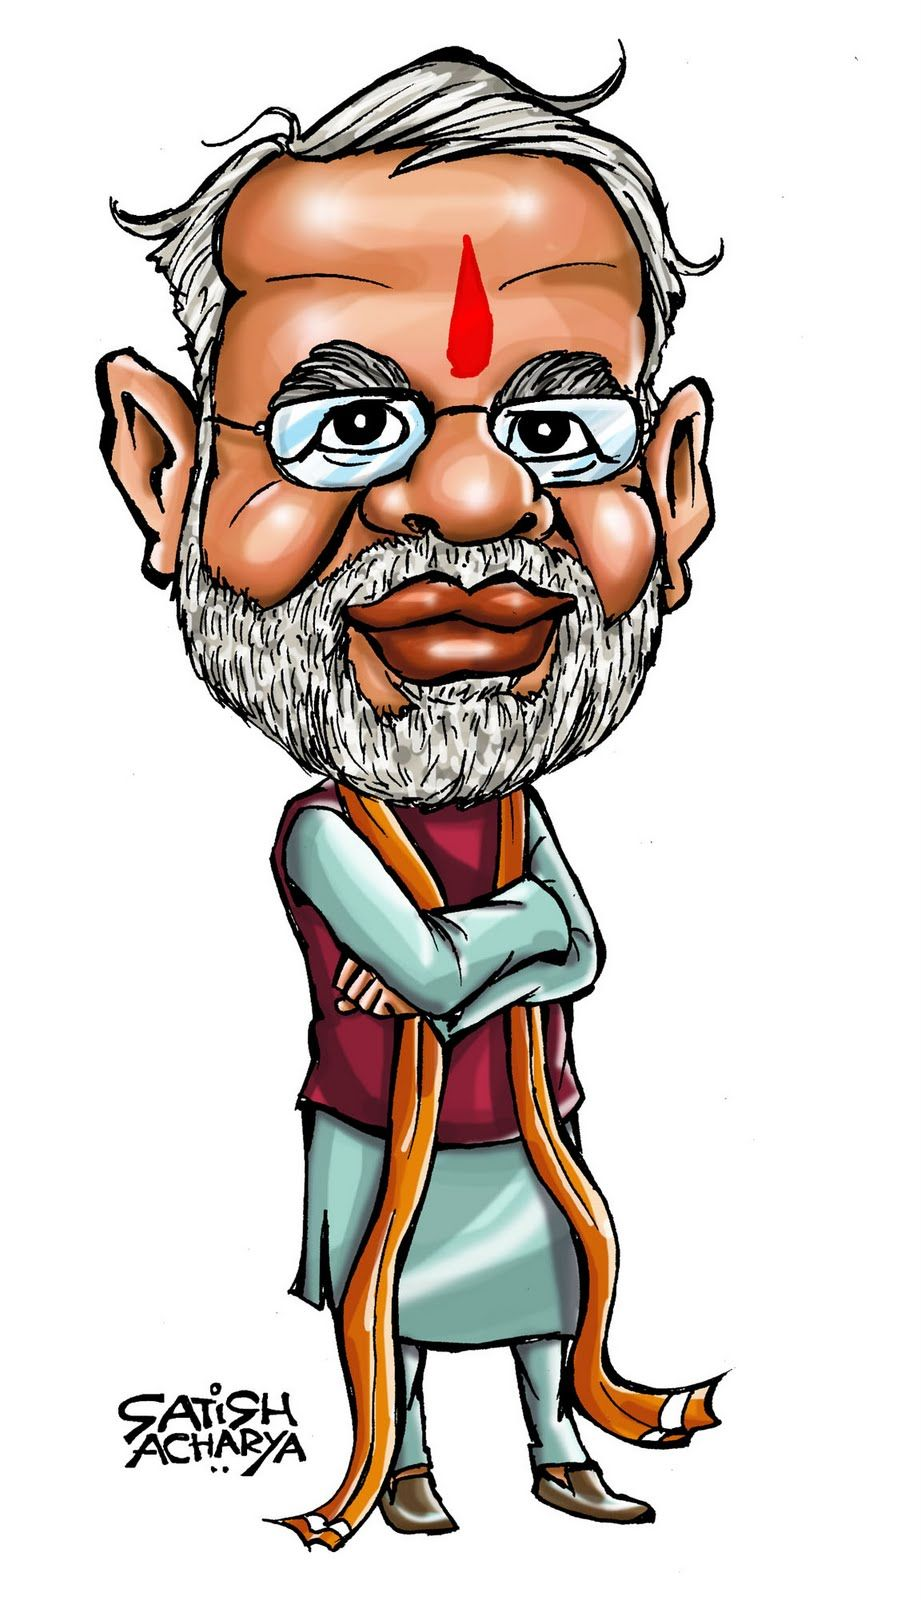 Pin By Myusuf Advani On Caricatures Politicians In 2019 3d Art